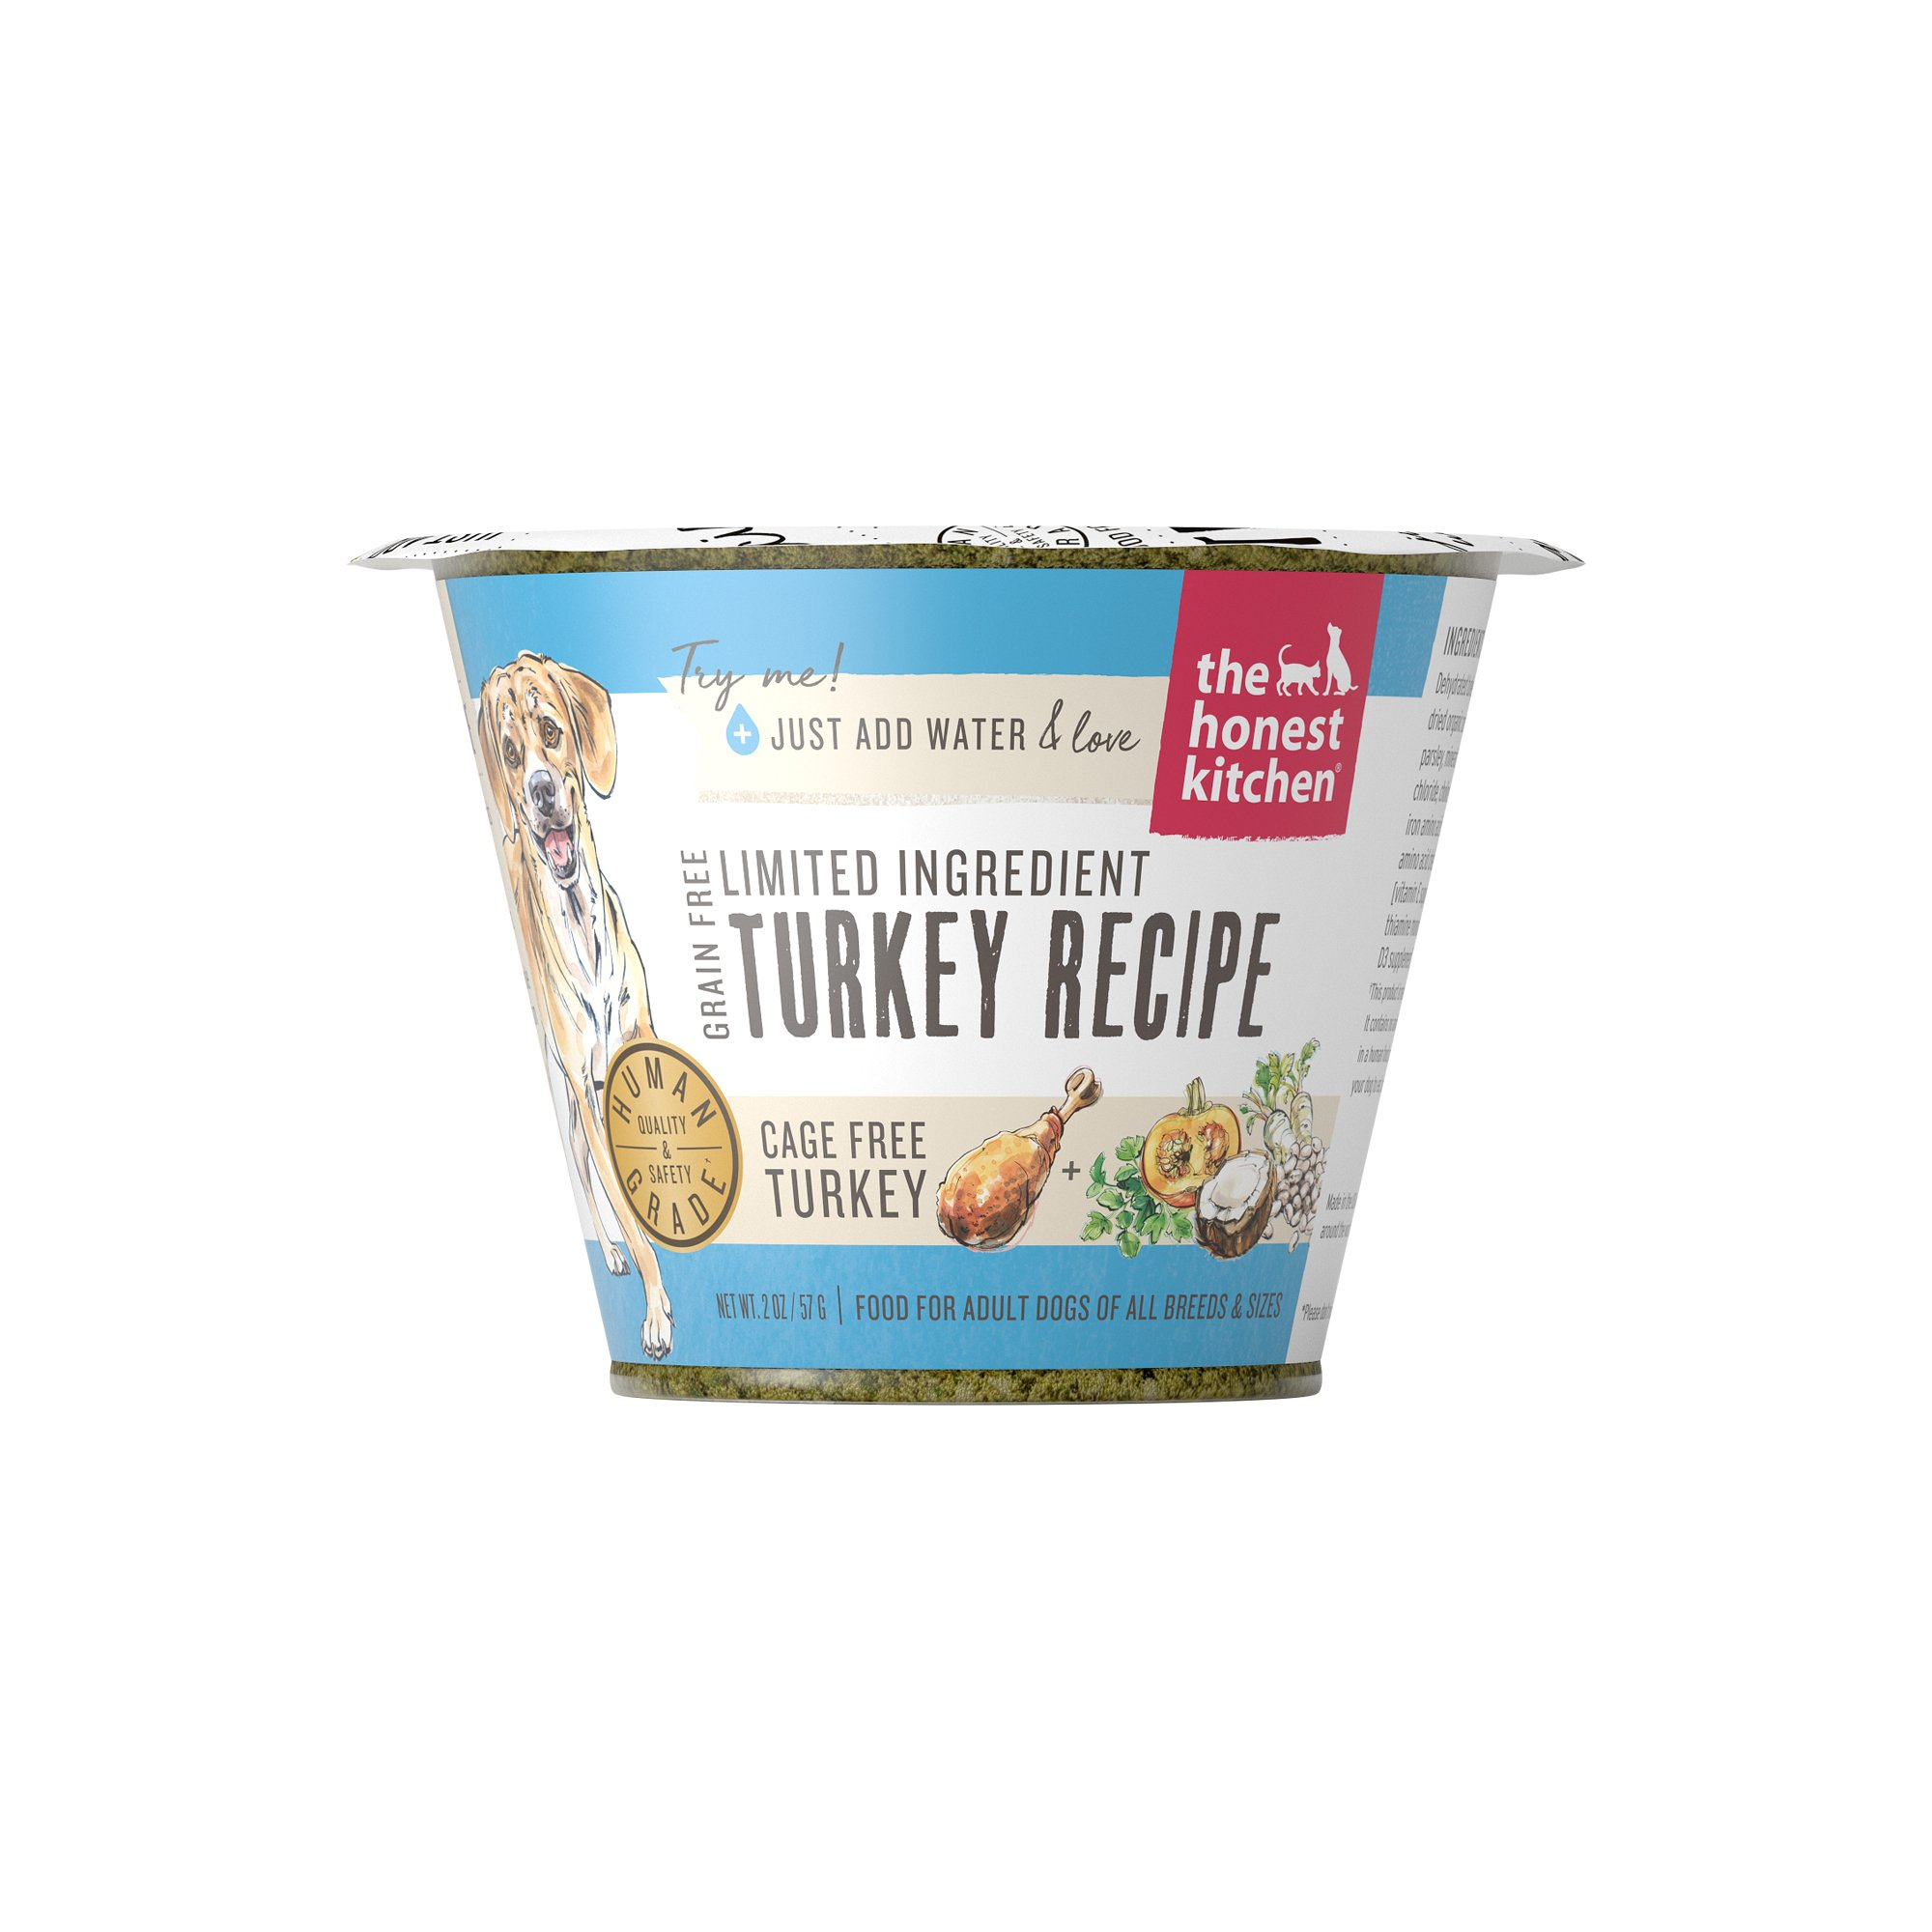 Honest Kitchen The Limited Ingredient Turkey Recipe Food Dogs (12 Pack), 1.75 oz